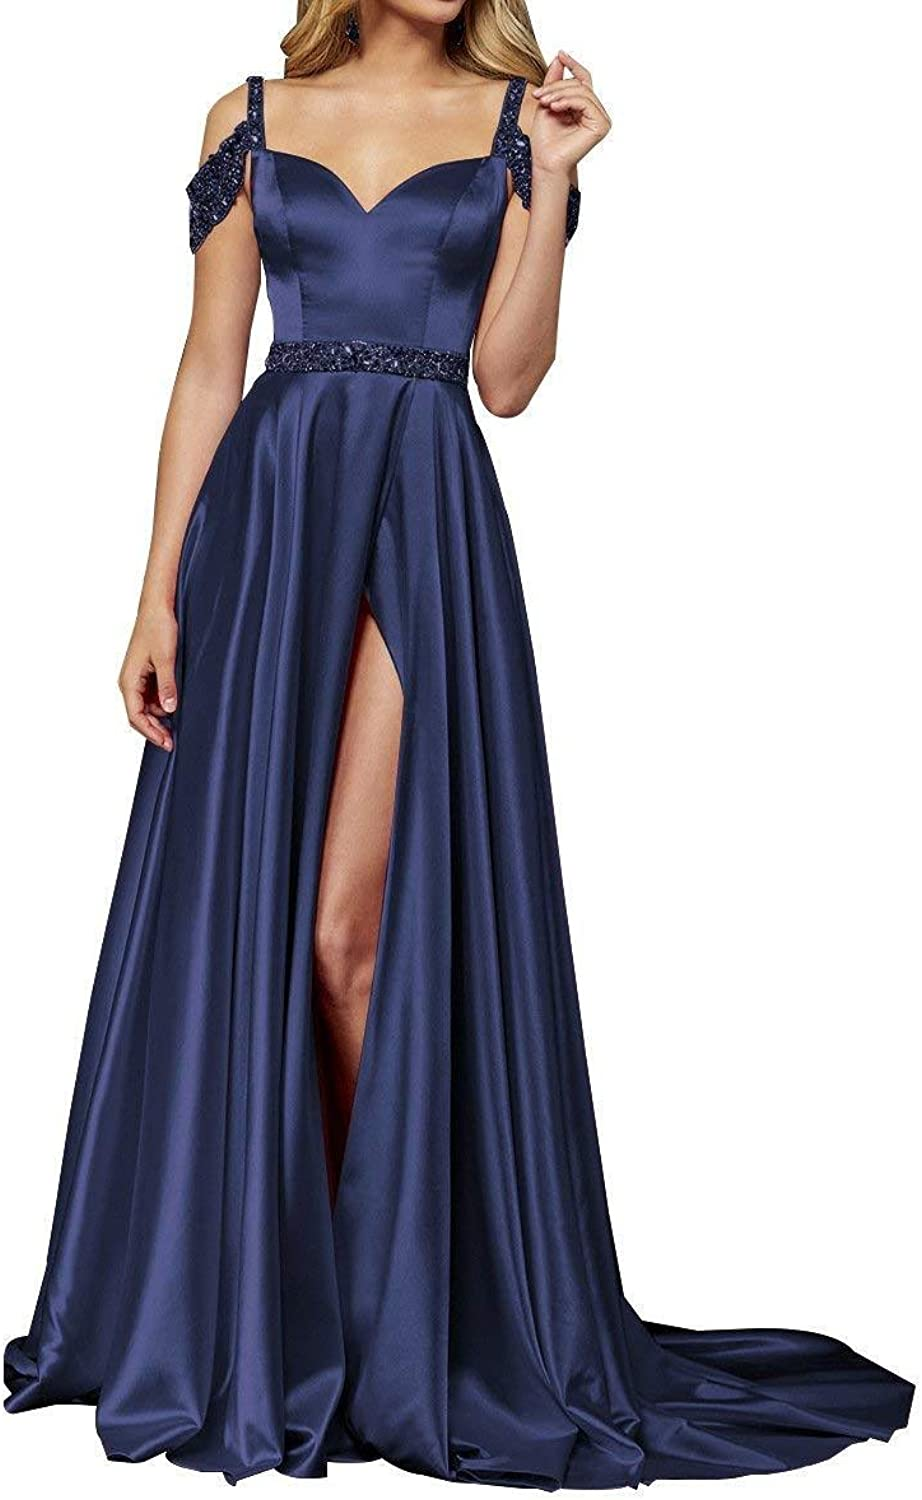 Liangjinsmkj Off The Shoulder Side Slit Emprie Long Prom Dresses Straps Beaded Satin Evening Party Homecoming Gowns